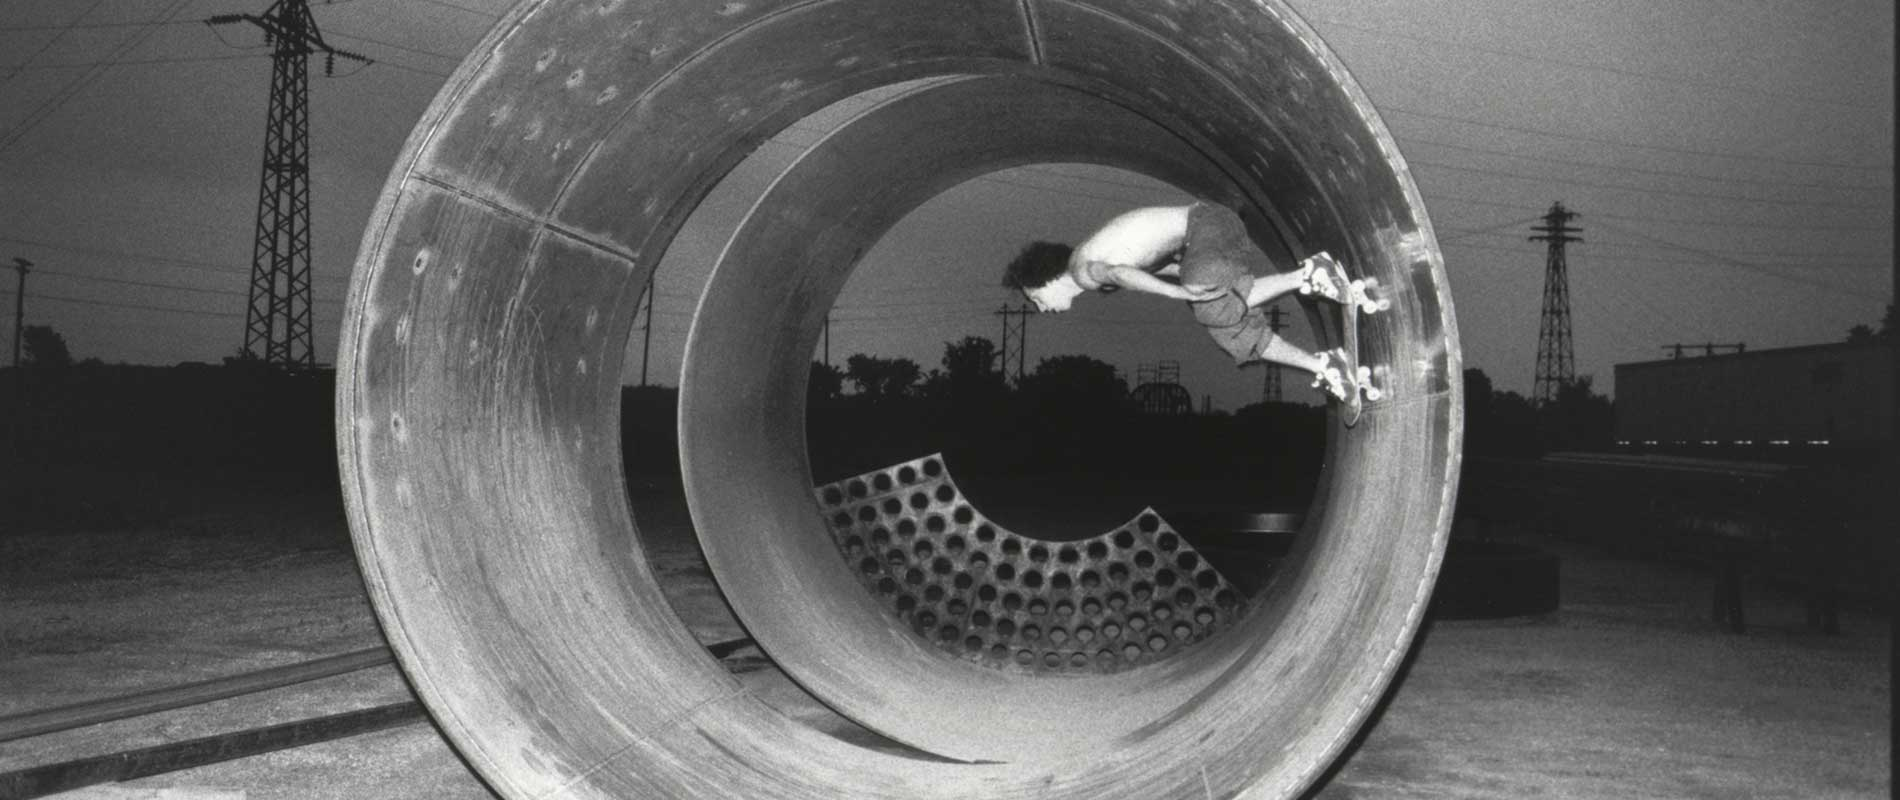 Ed Templeton Golden Age of neglect Drago Publisher Skate culture